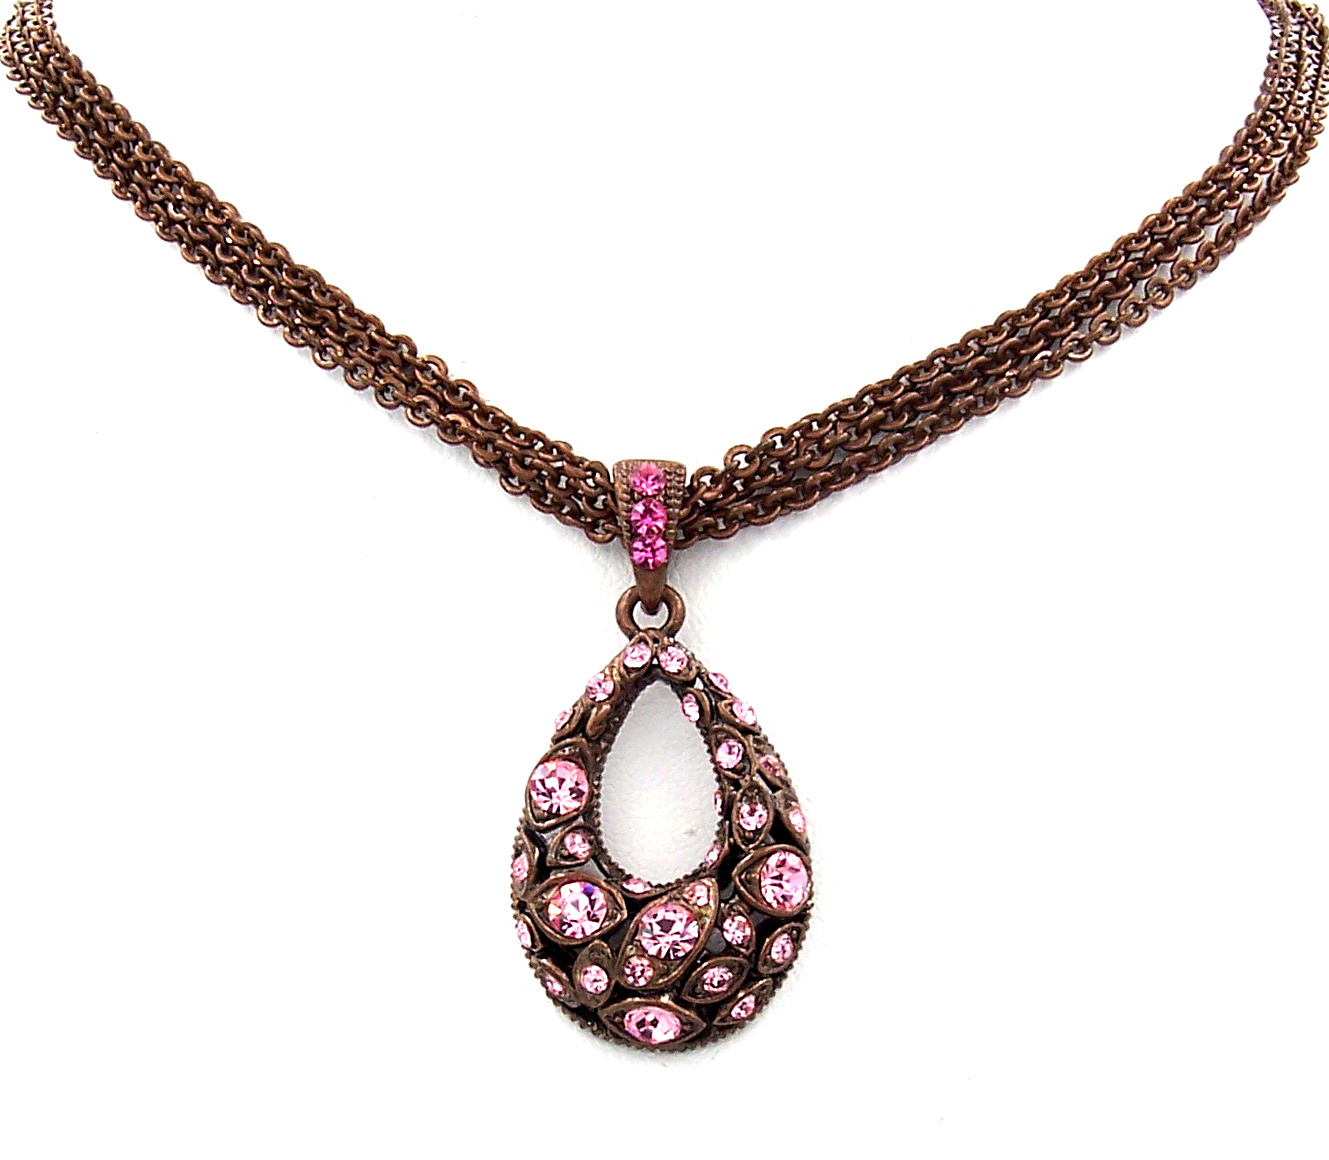 Swarovski Element Crystal New Copper Rose Oval Pendant Necklace Earrings Gift